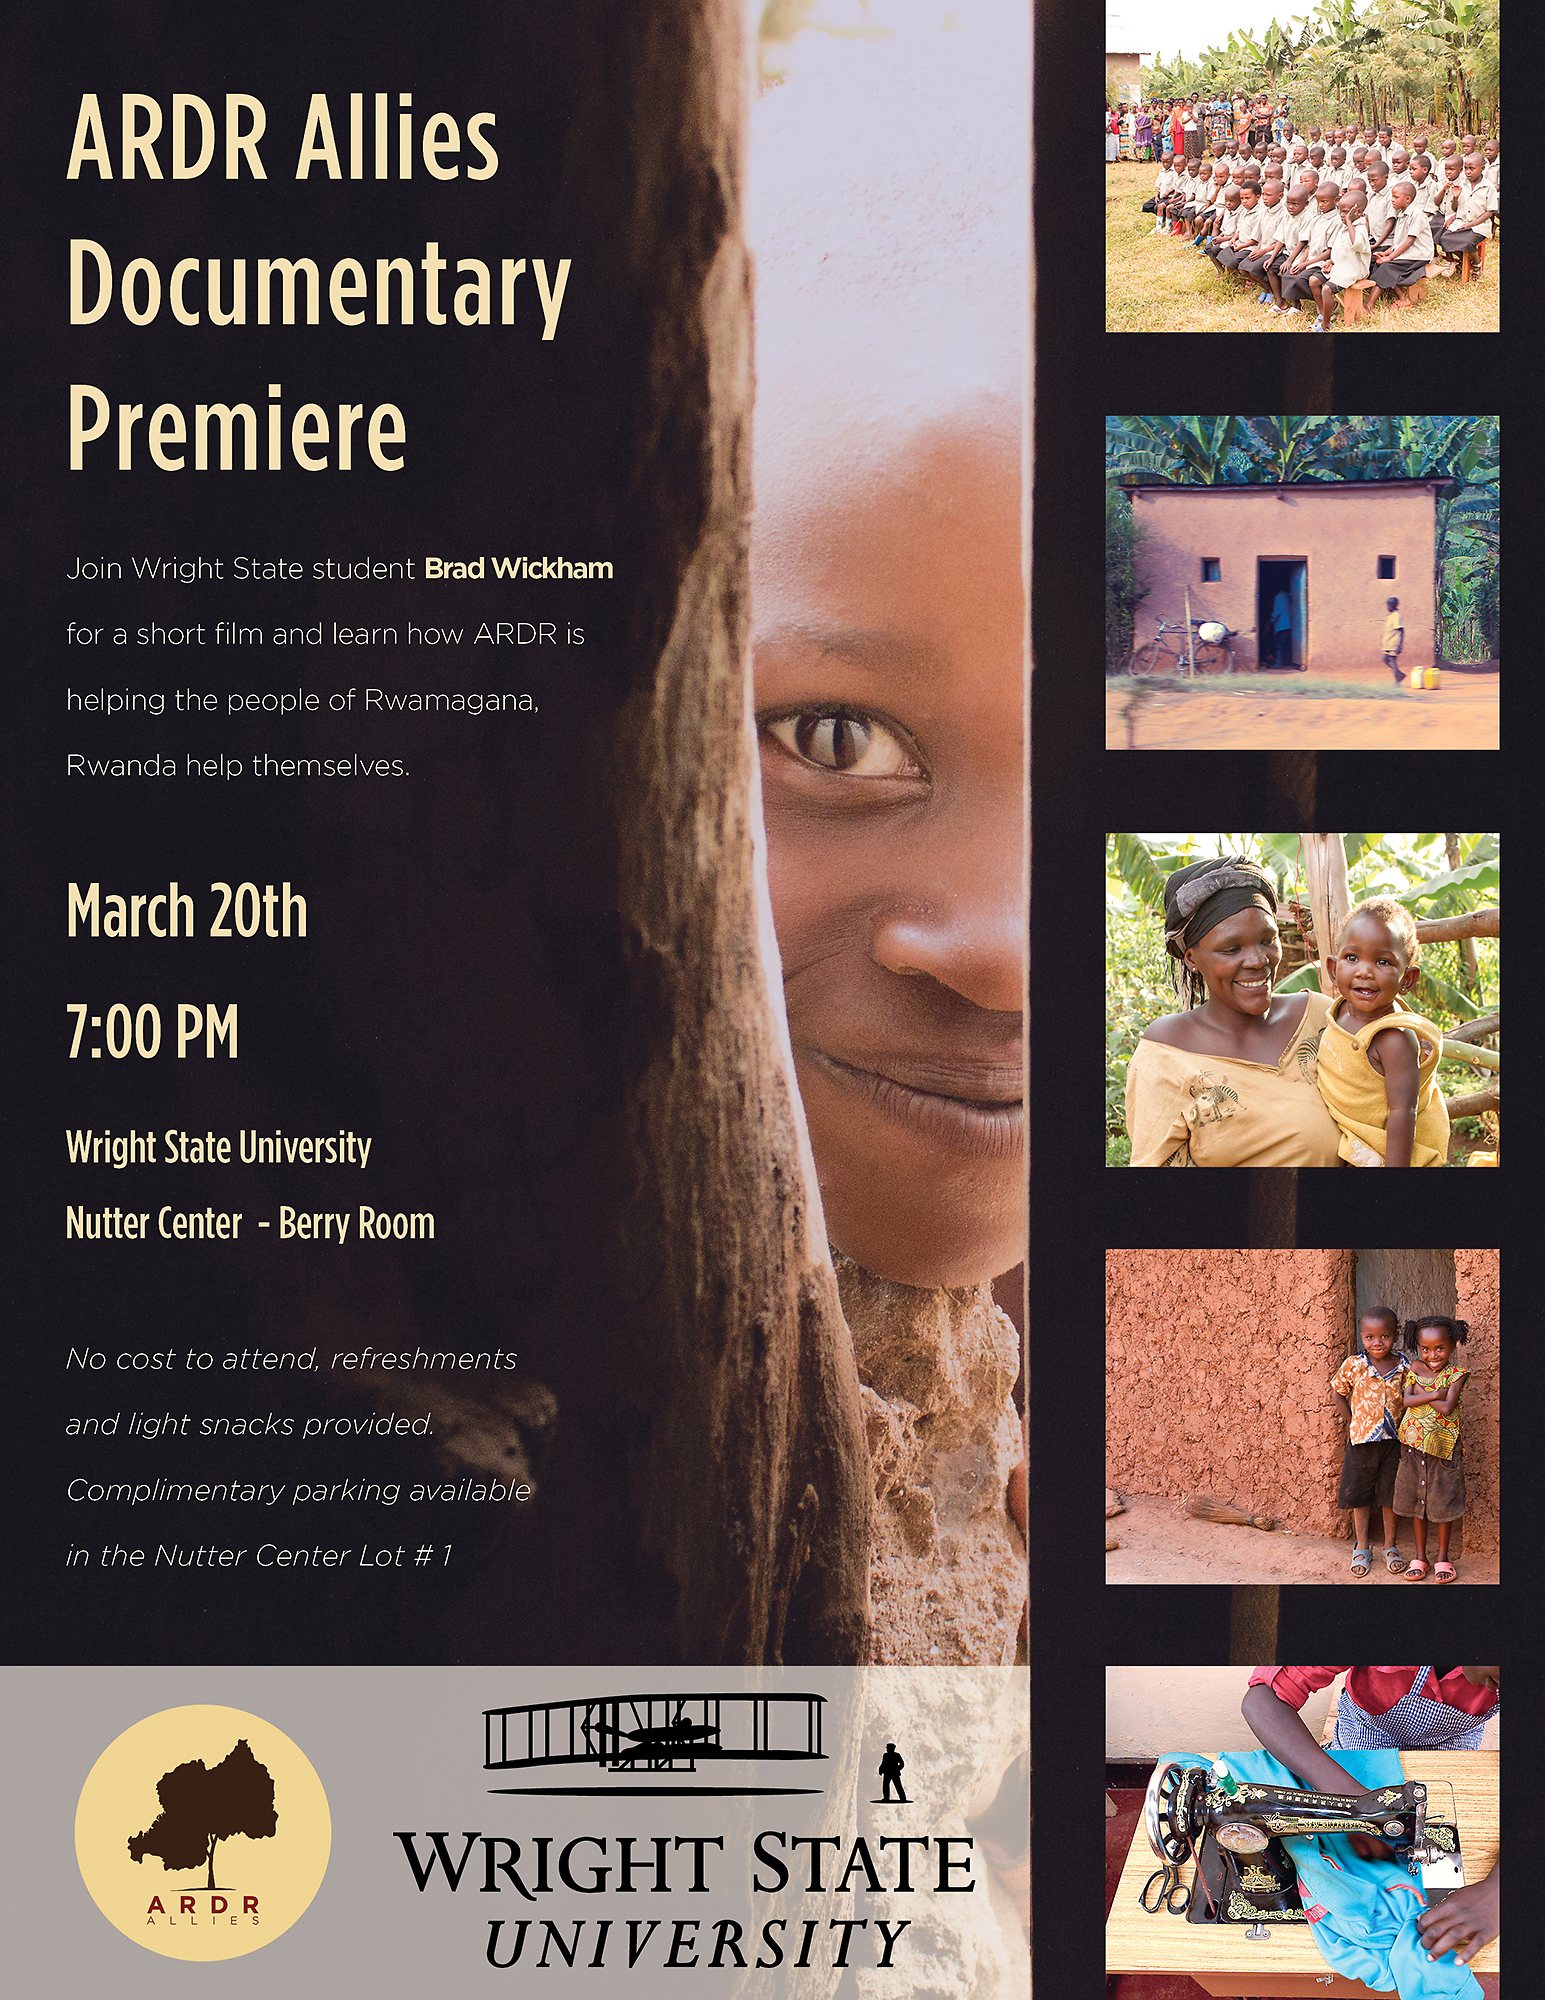 ARDR Allies Documentary Premiere Poster